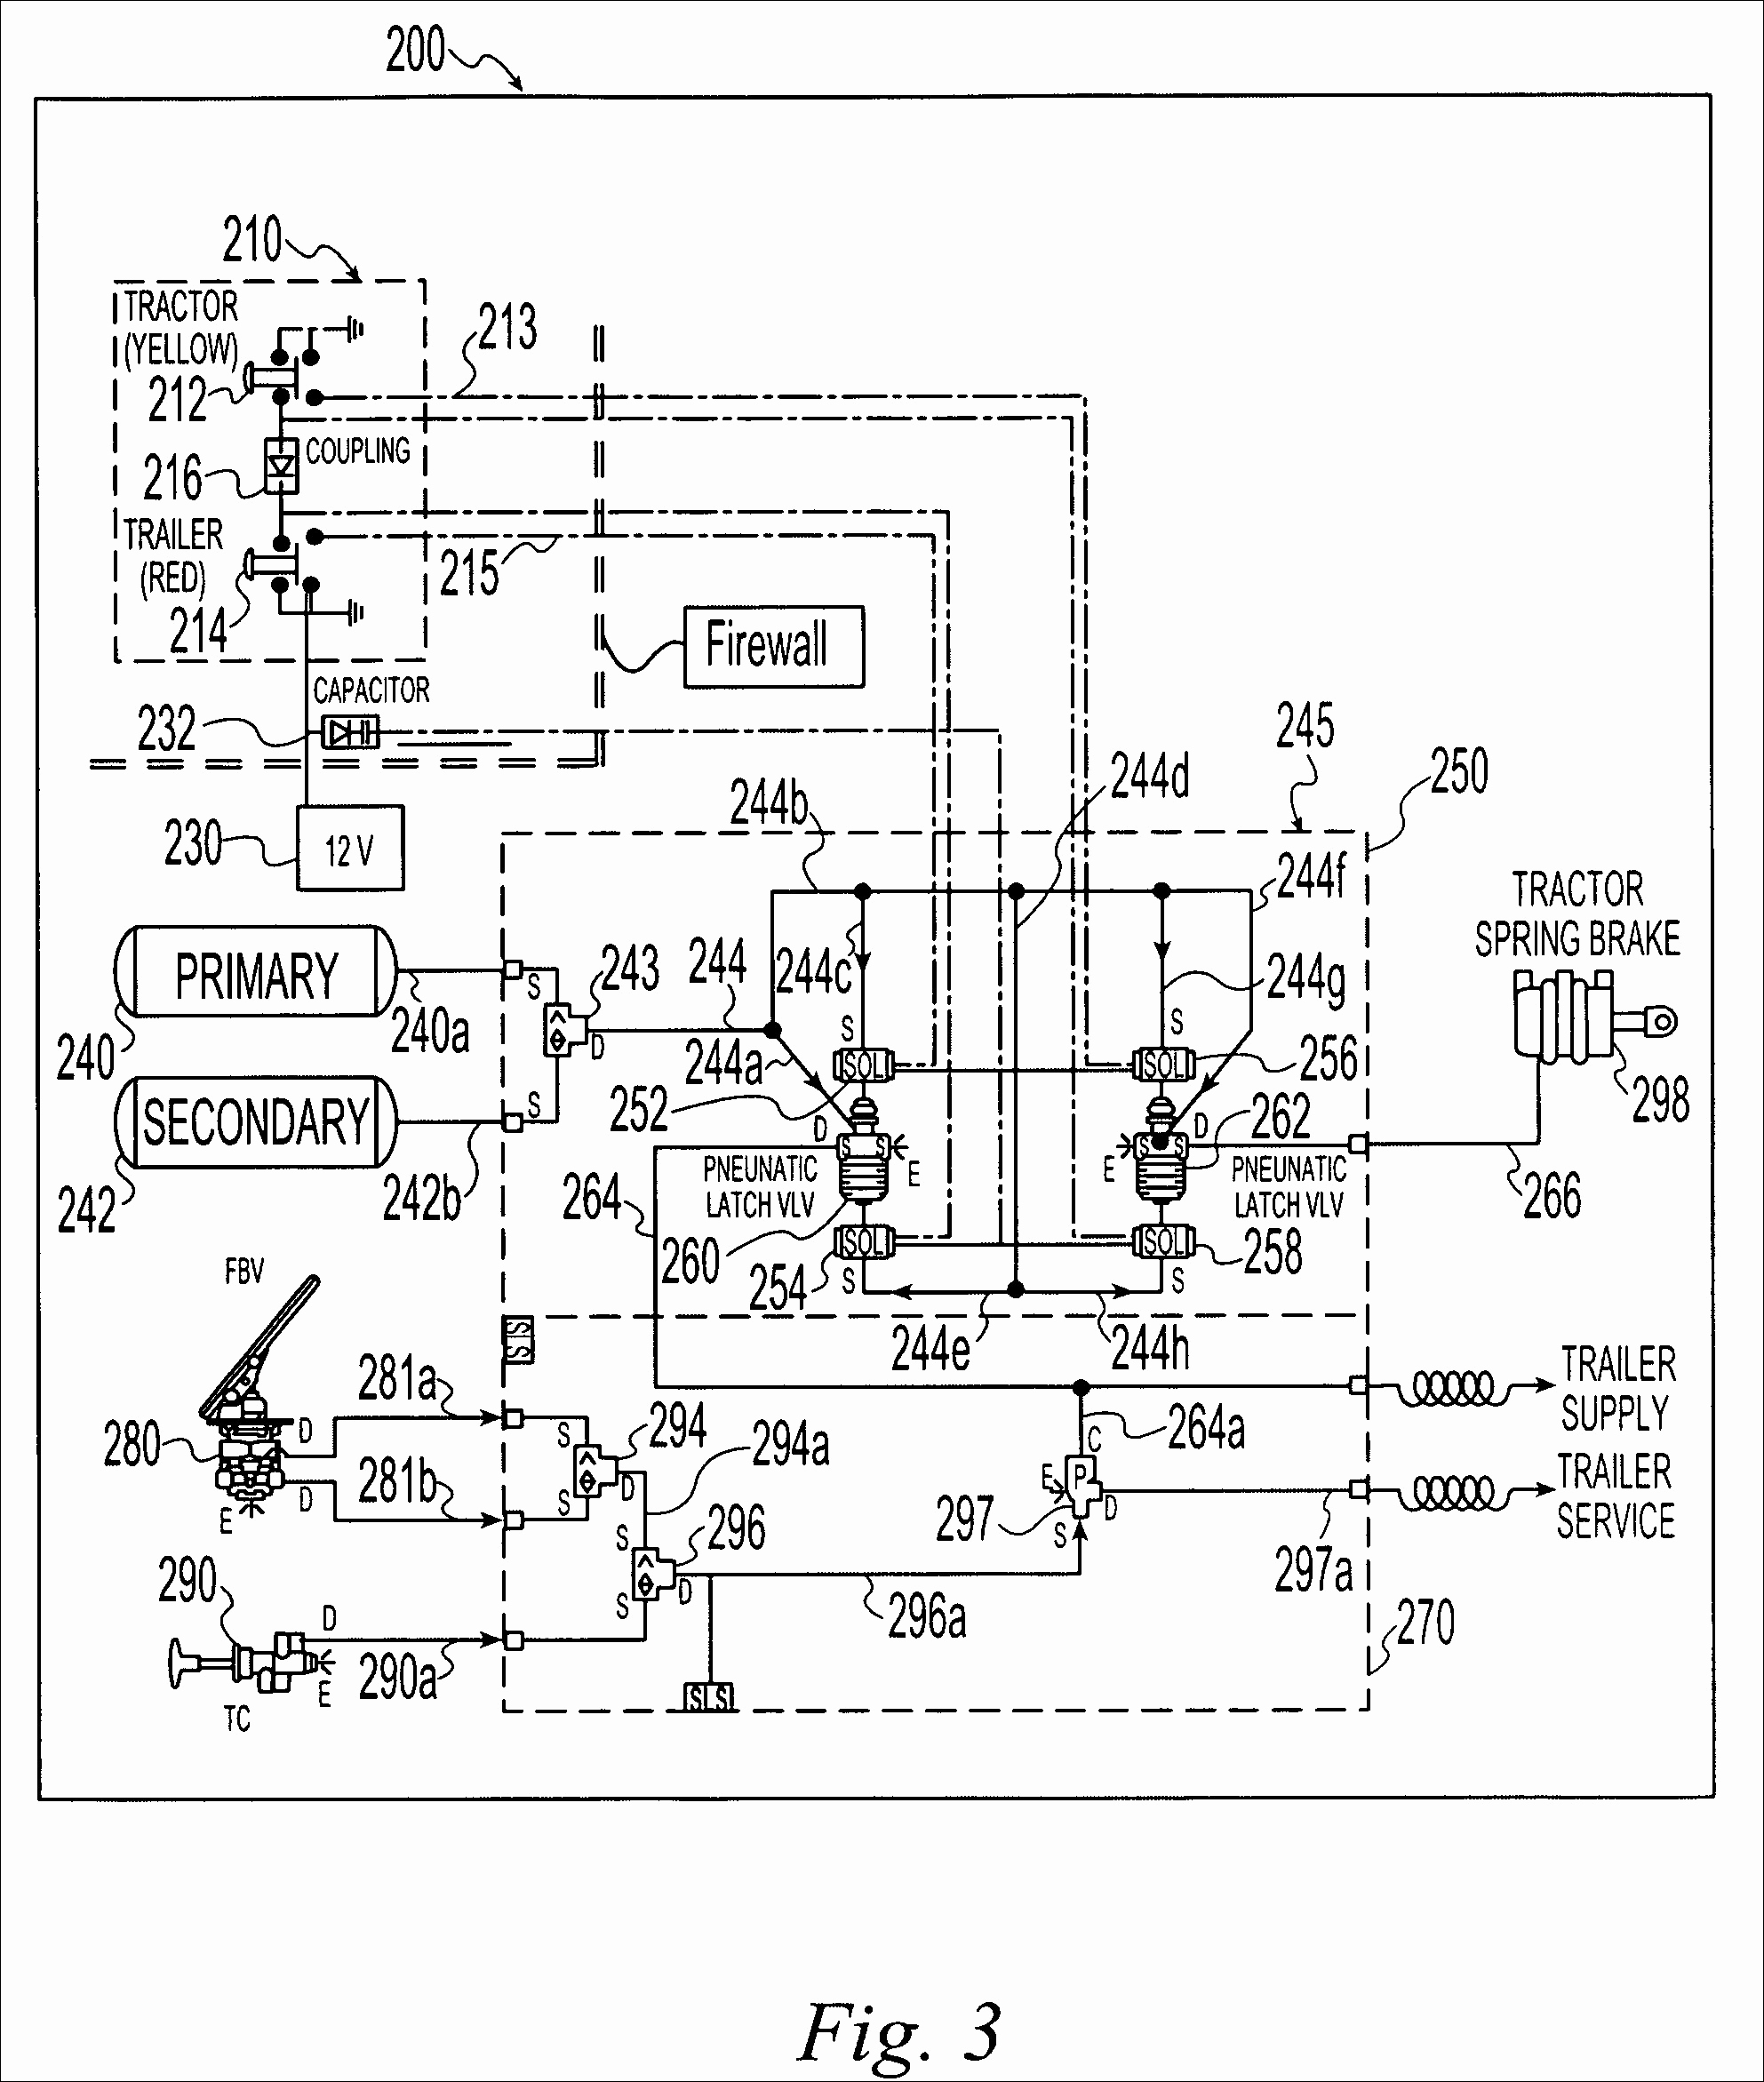 diagram] chevy silverado truck wiring diagram full version hd quality wiring  diagram - diagramsworld.fenetre-pvc-loire.fr  diagram database - fenetre-pvc-loire.fr